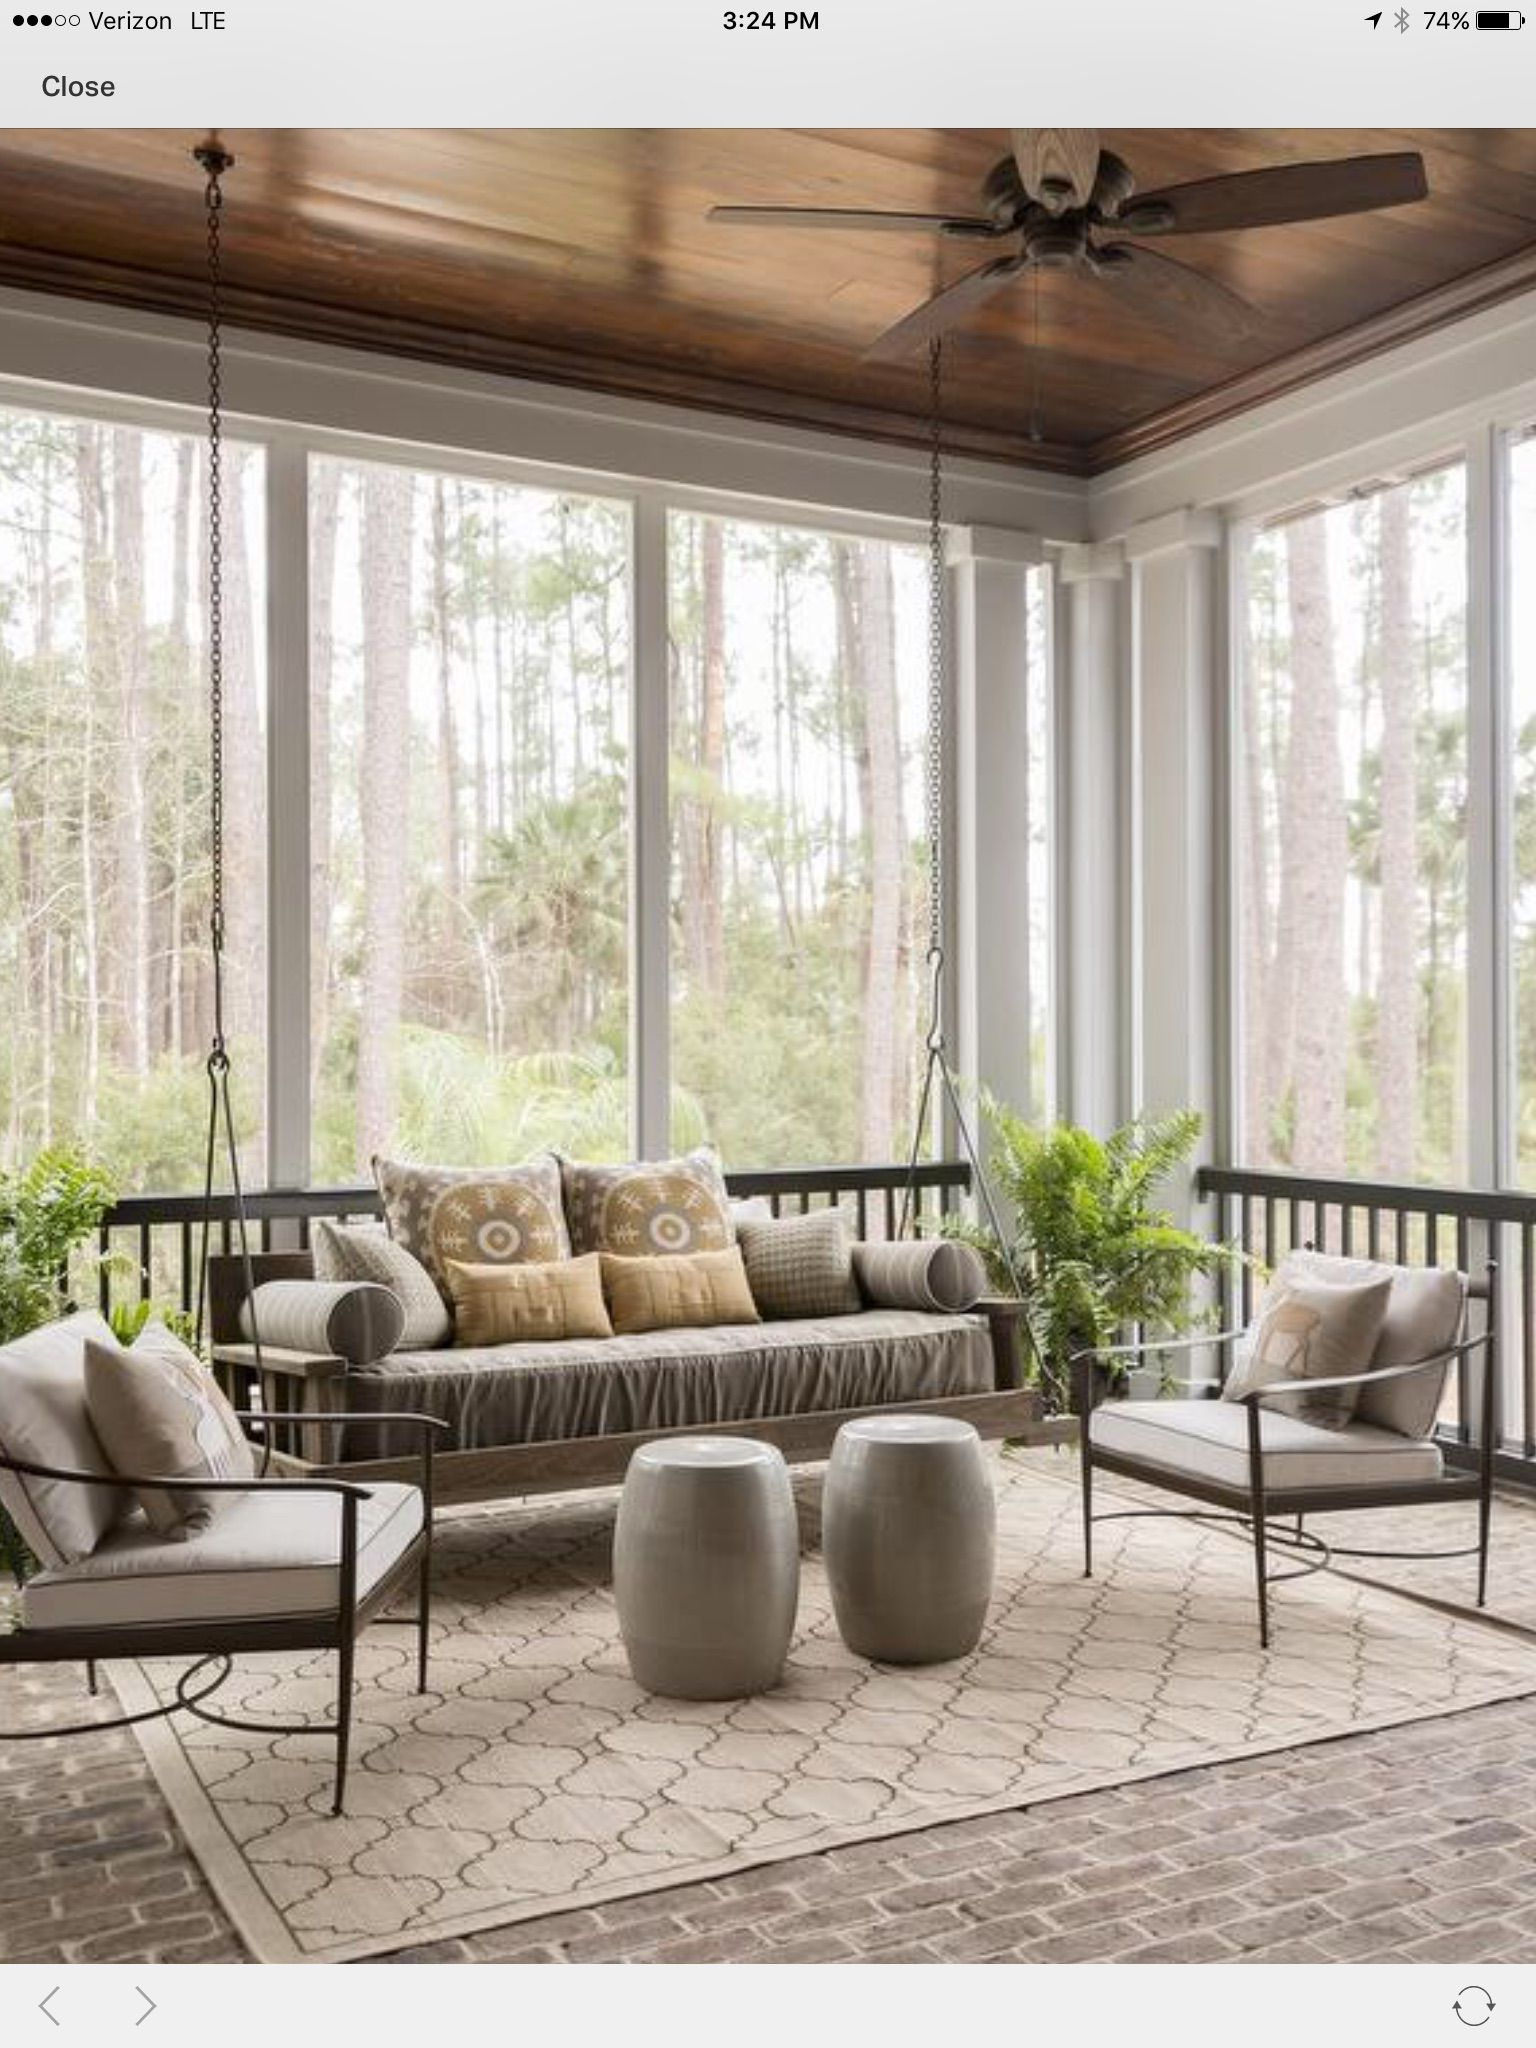 90 Deck With Screened In Porch Plans Decorating Ideas